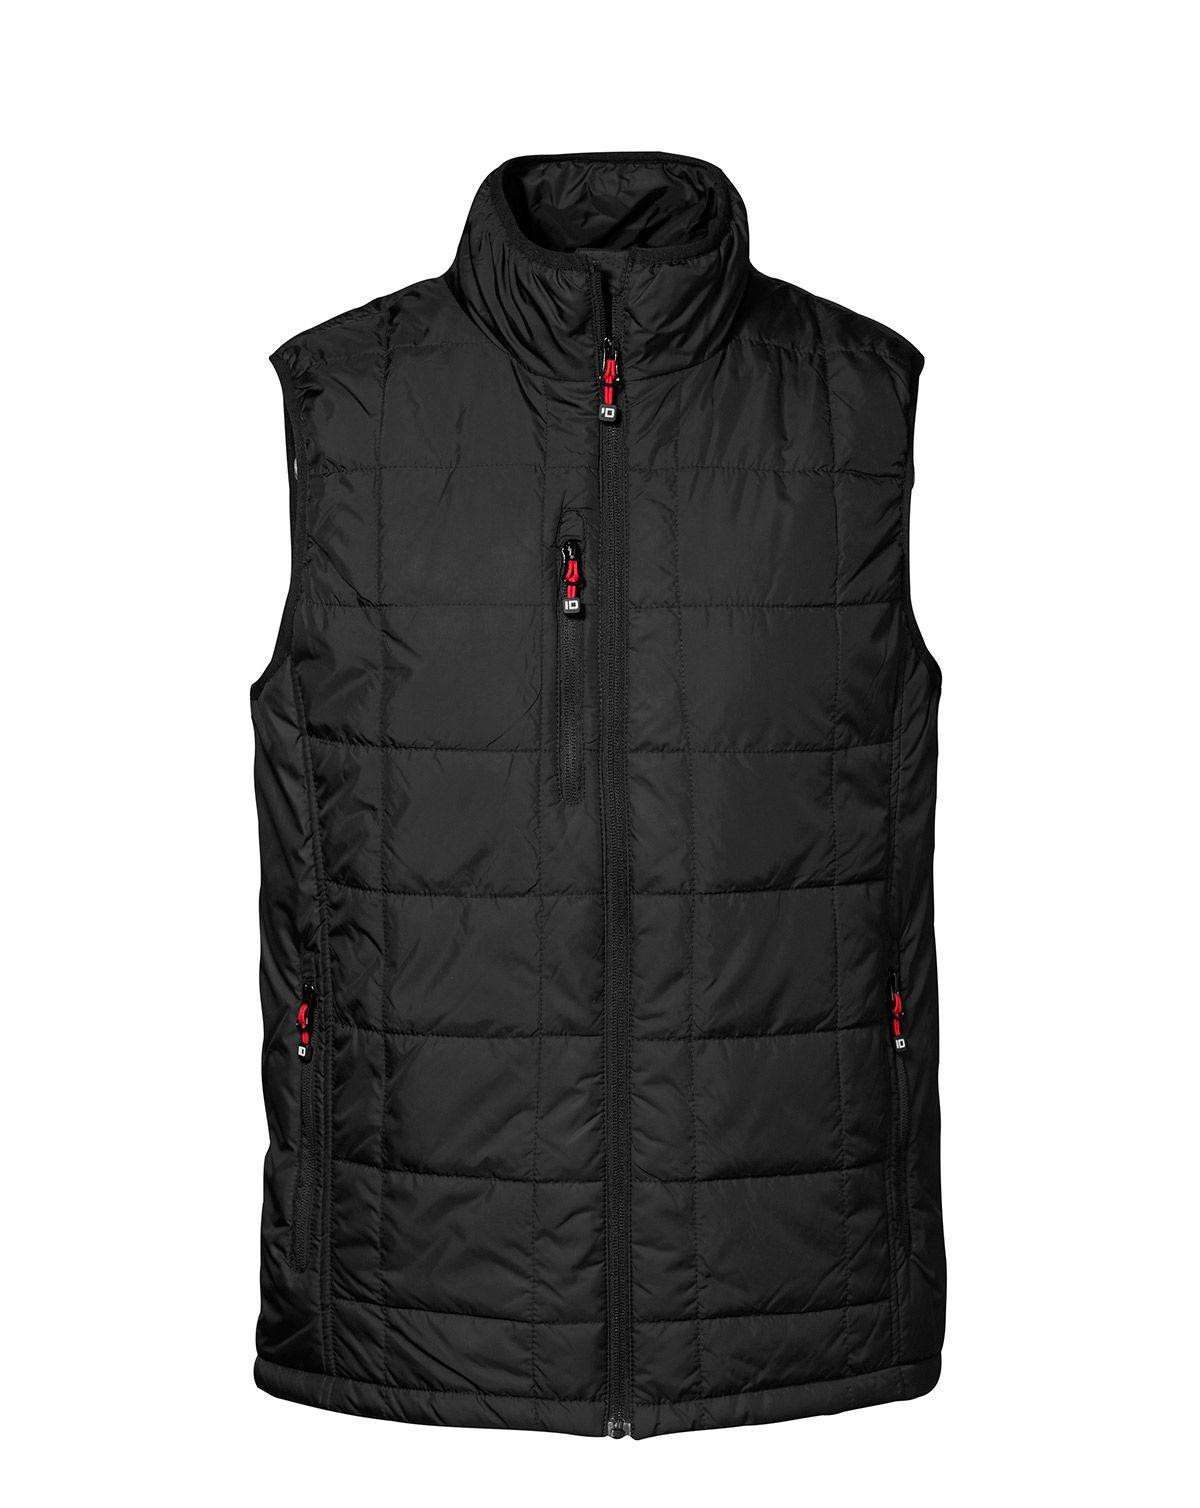 Image of   ID Vatteret Vest (Sort, 3XL)